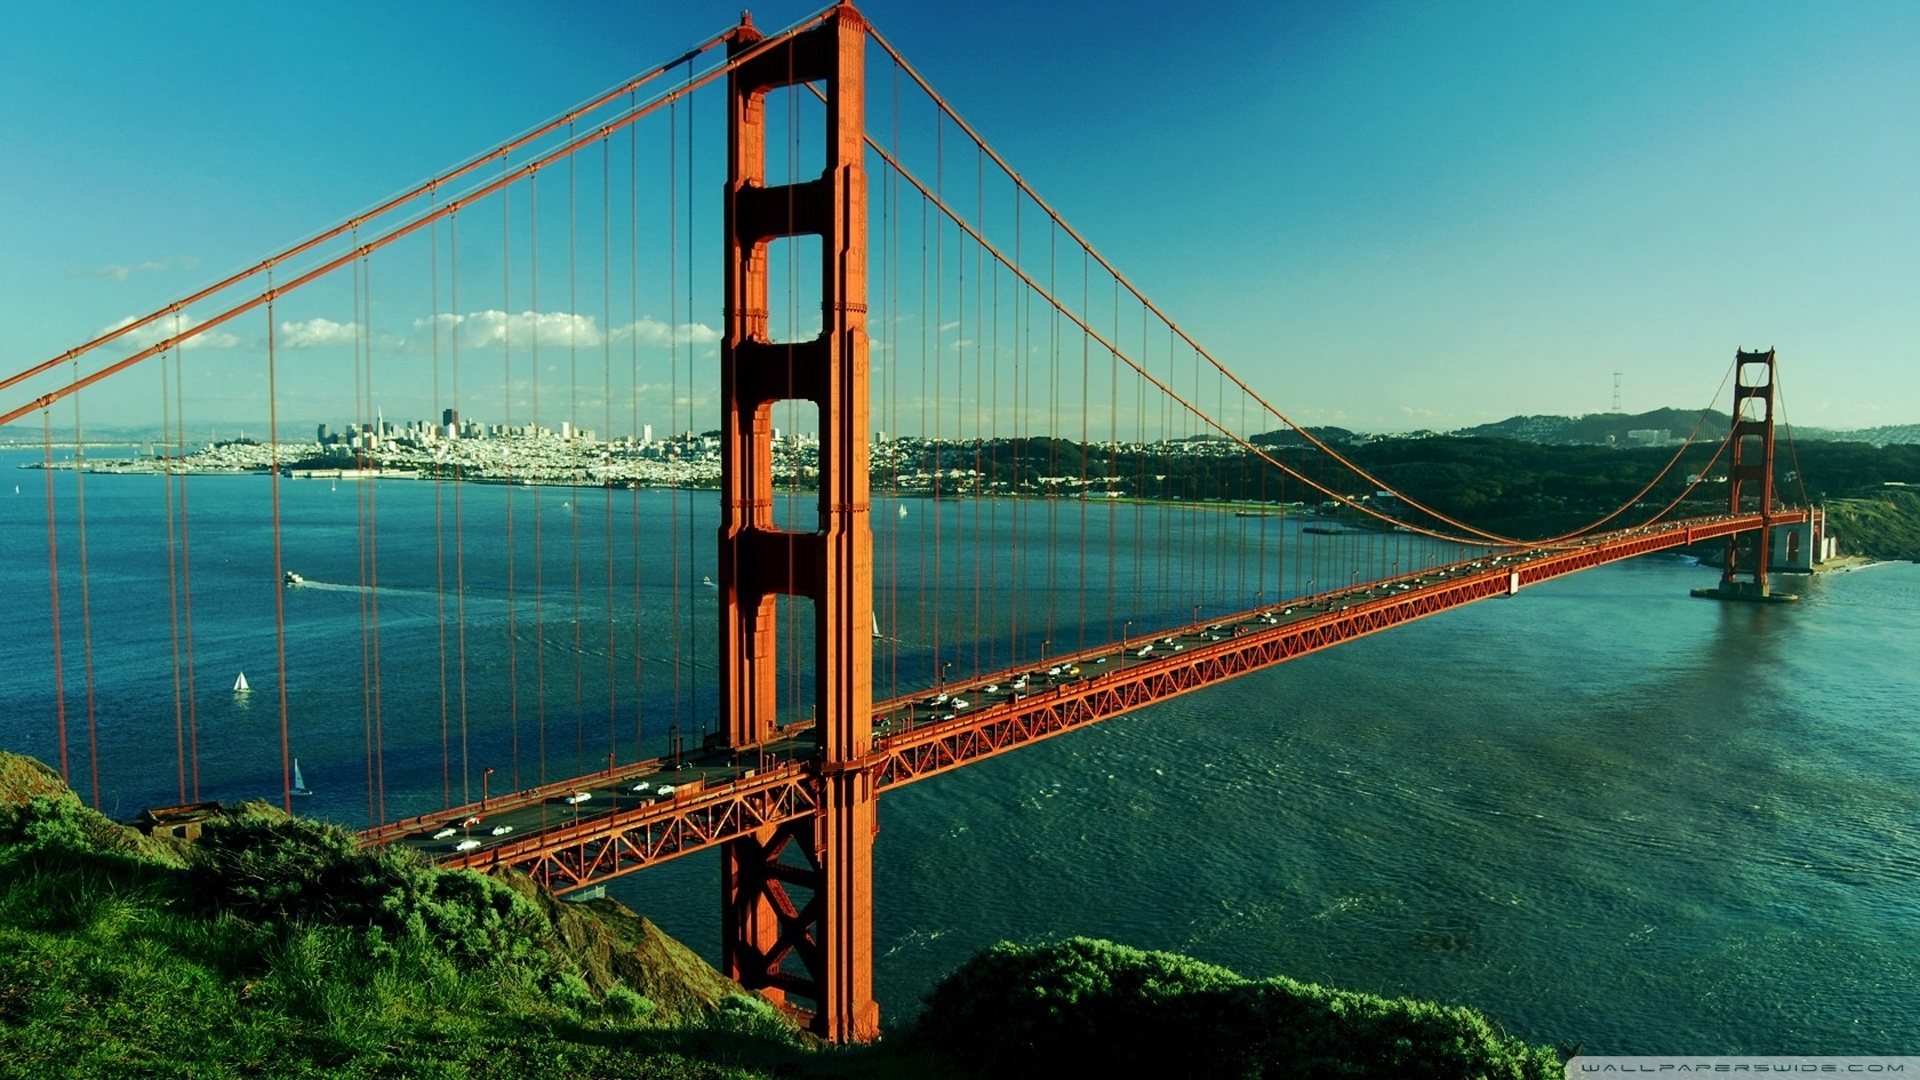 san francisco ❤ 4k hd desktop wallpaper for 4k ultra hd tv • wide